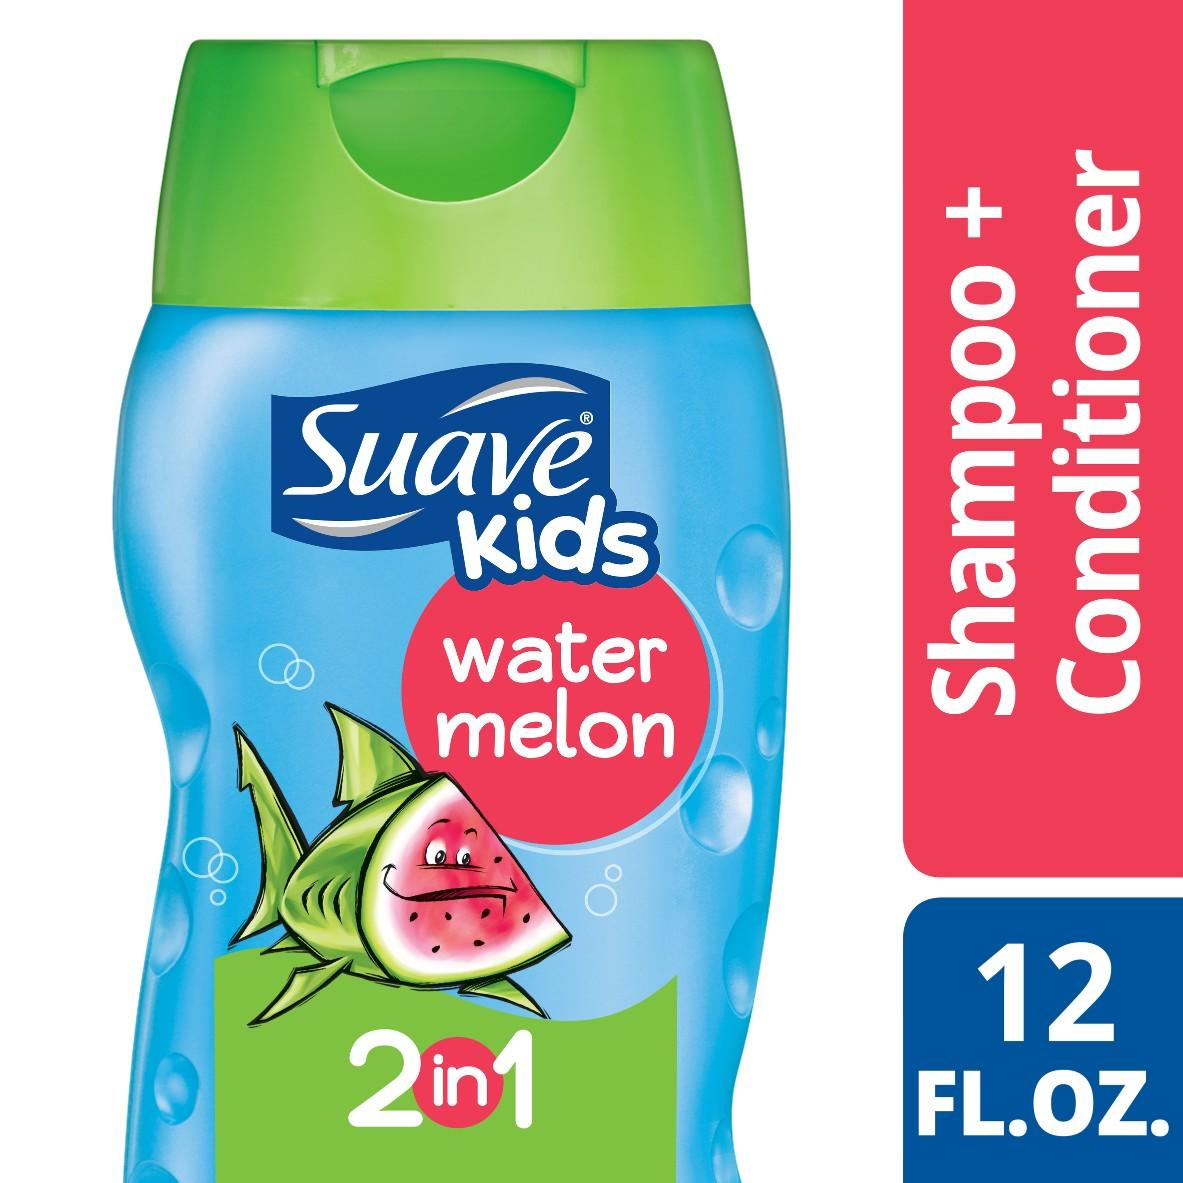 Hair Conditioners Brands Care On Sale Prices Selsun 7 Herbal Anti Dandruff Shampoo 120ml Suave Kids 2 In 1 Watermelon 12 Oz